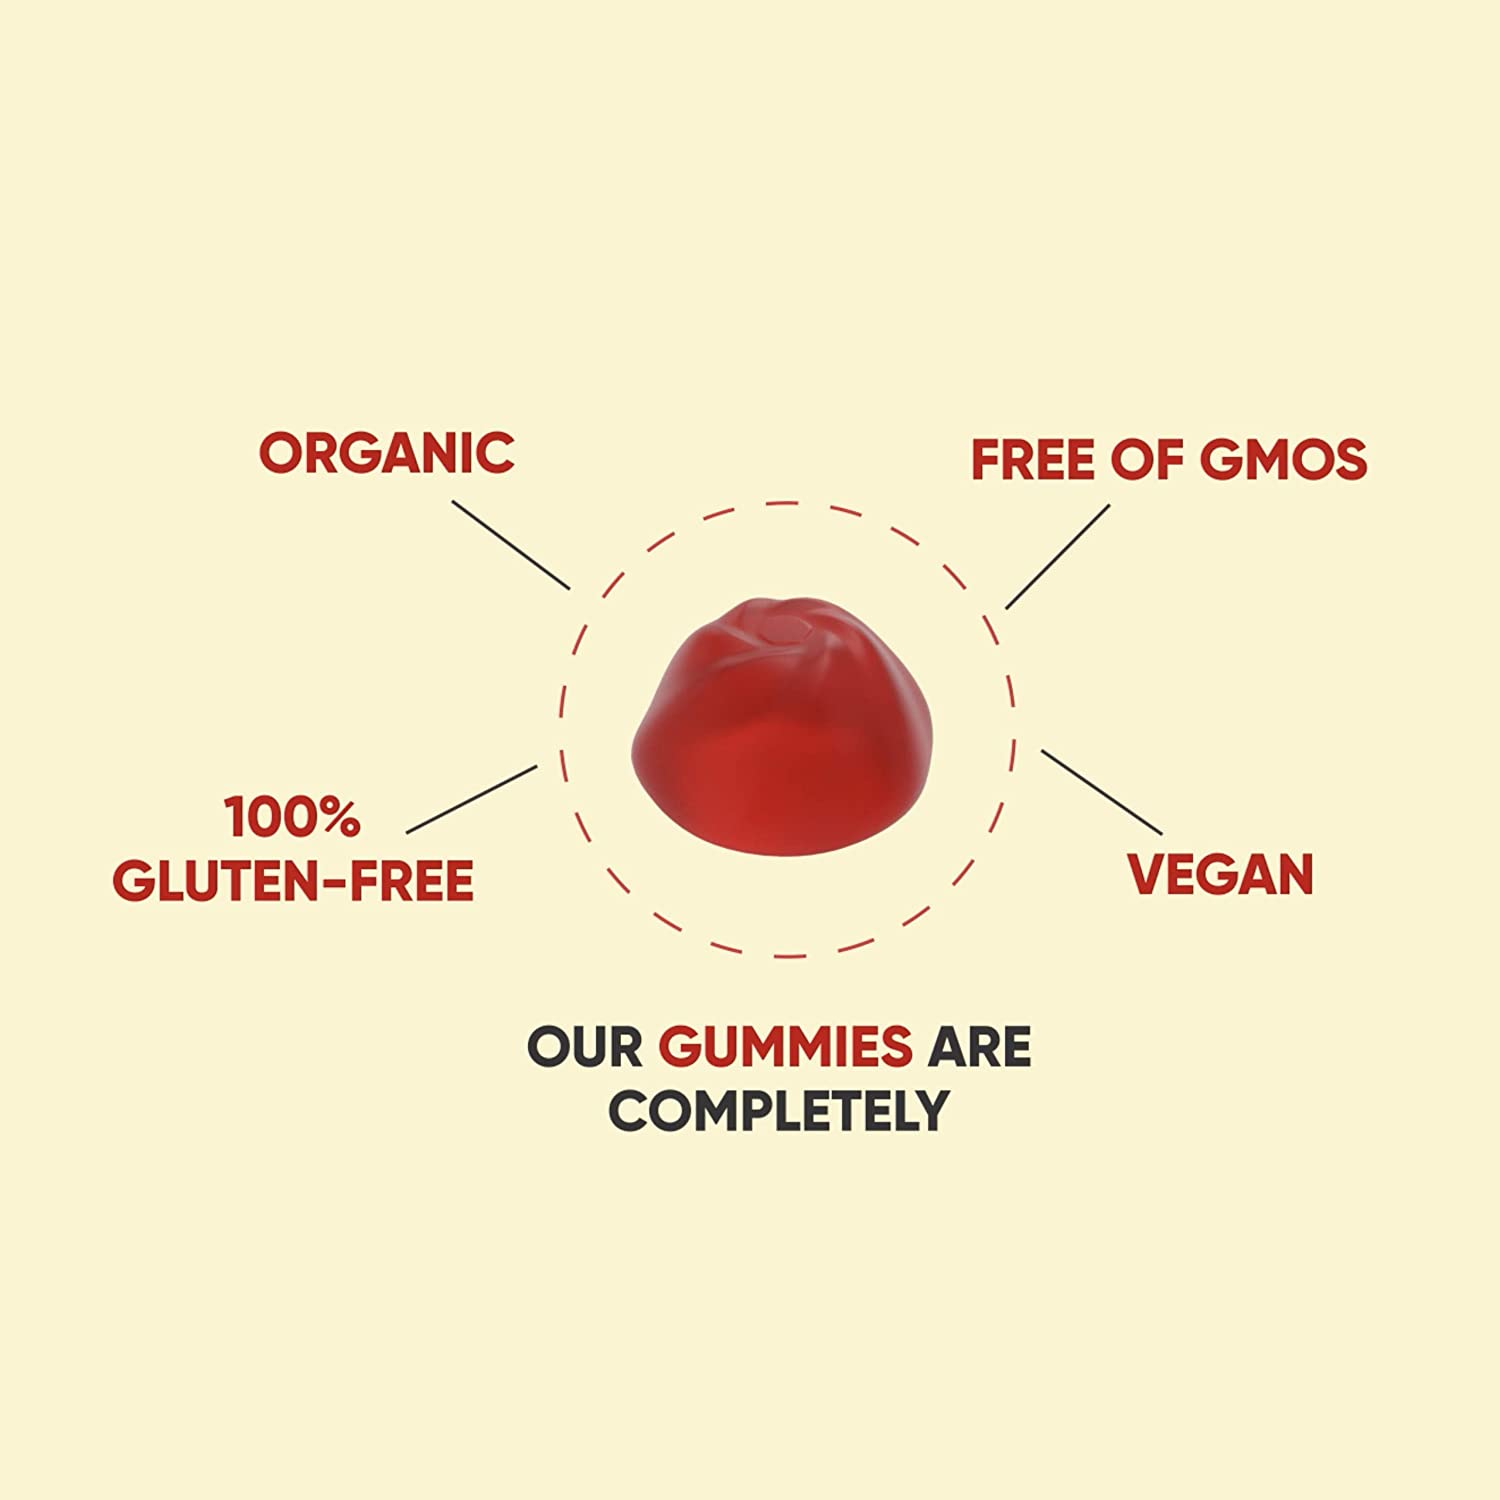 World's First Apple Cider Vinegar Gummy Vitamins by Goli Nutrition - Immunity, Detox & Weight - (1 Pack, 60 Count, with The Mother, Gluten-Free, Organic, Vegan, Vitamin B9, B12, Beetroot, Pomegranate)